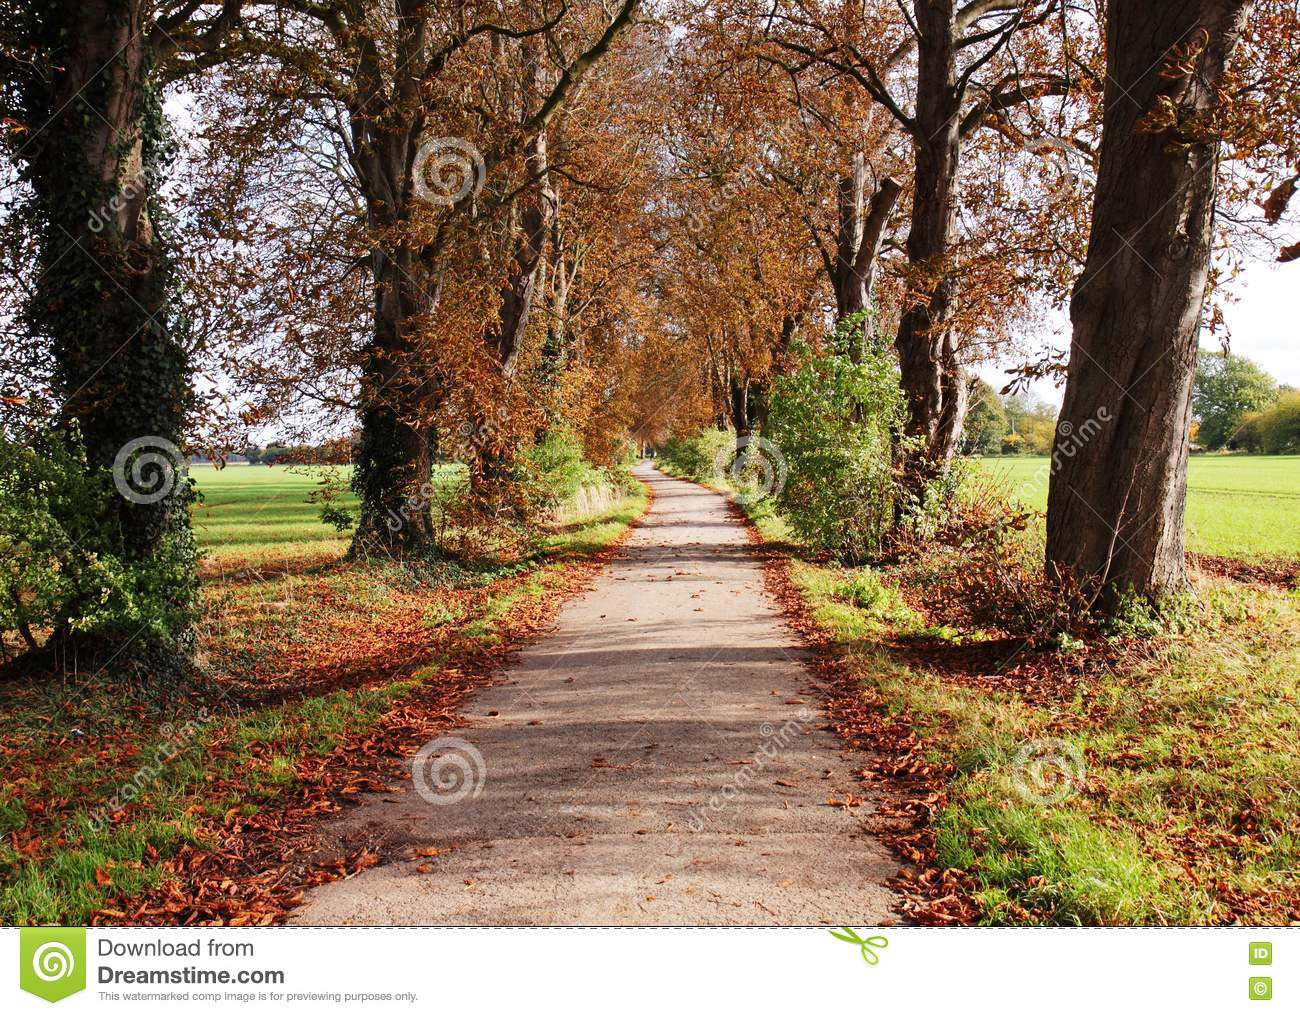 Landscaping between trees : Autumn landscape with lane between trees royalty free